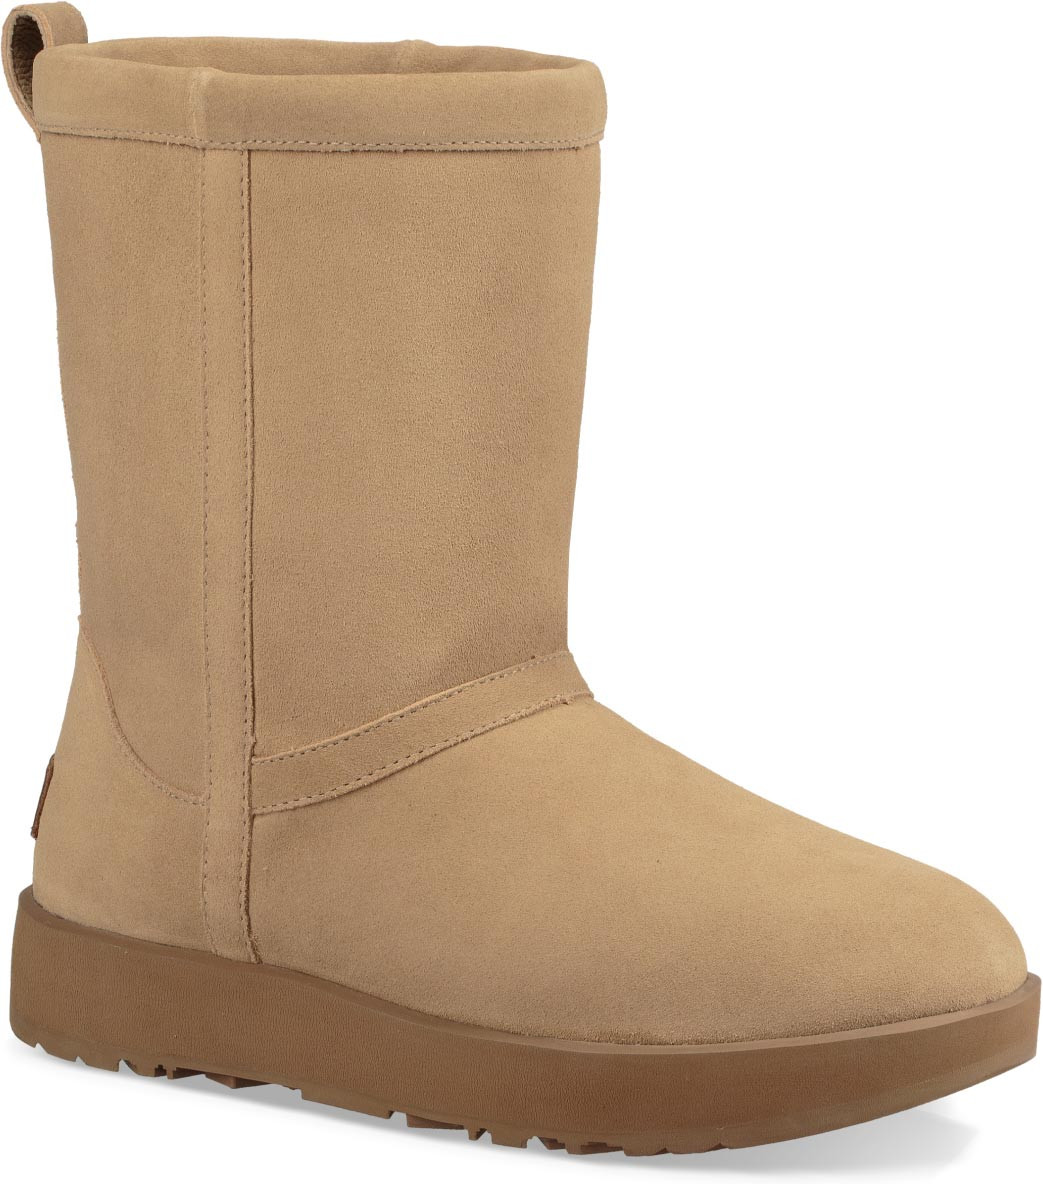 7b86b7ab12a91 UGG Women's Classic Short Waterproof